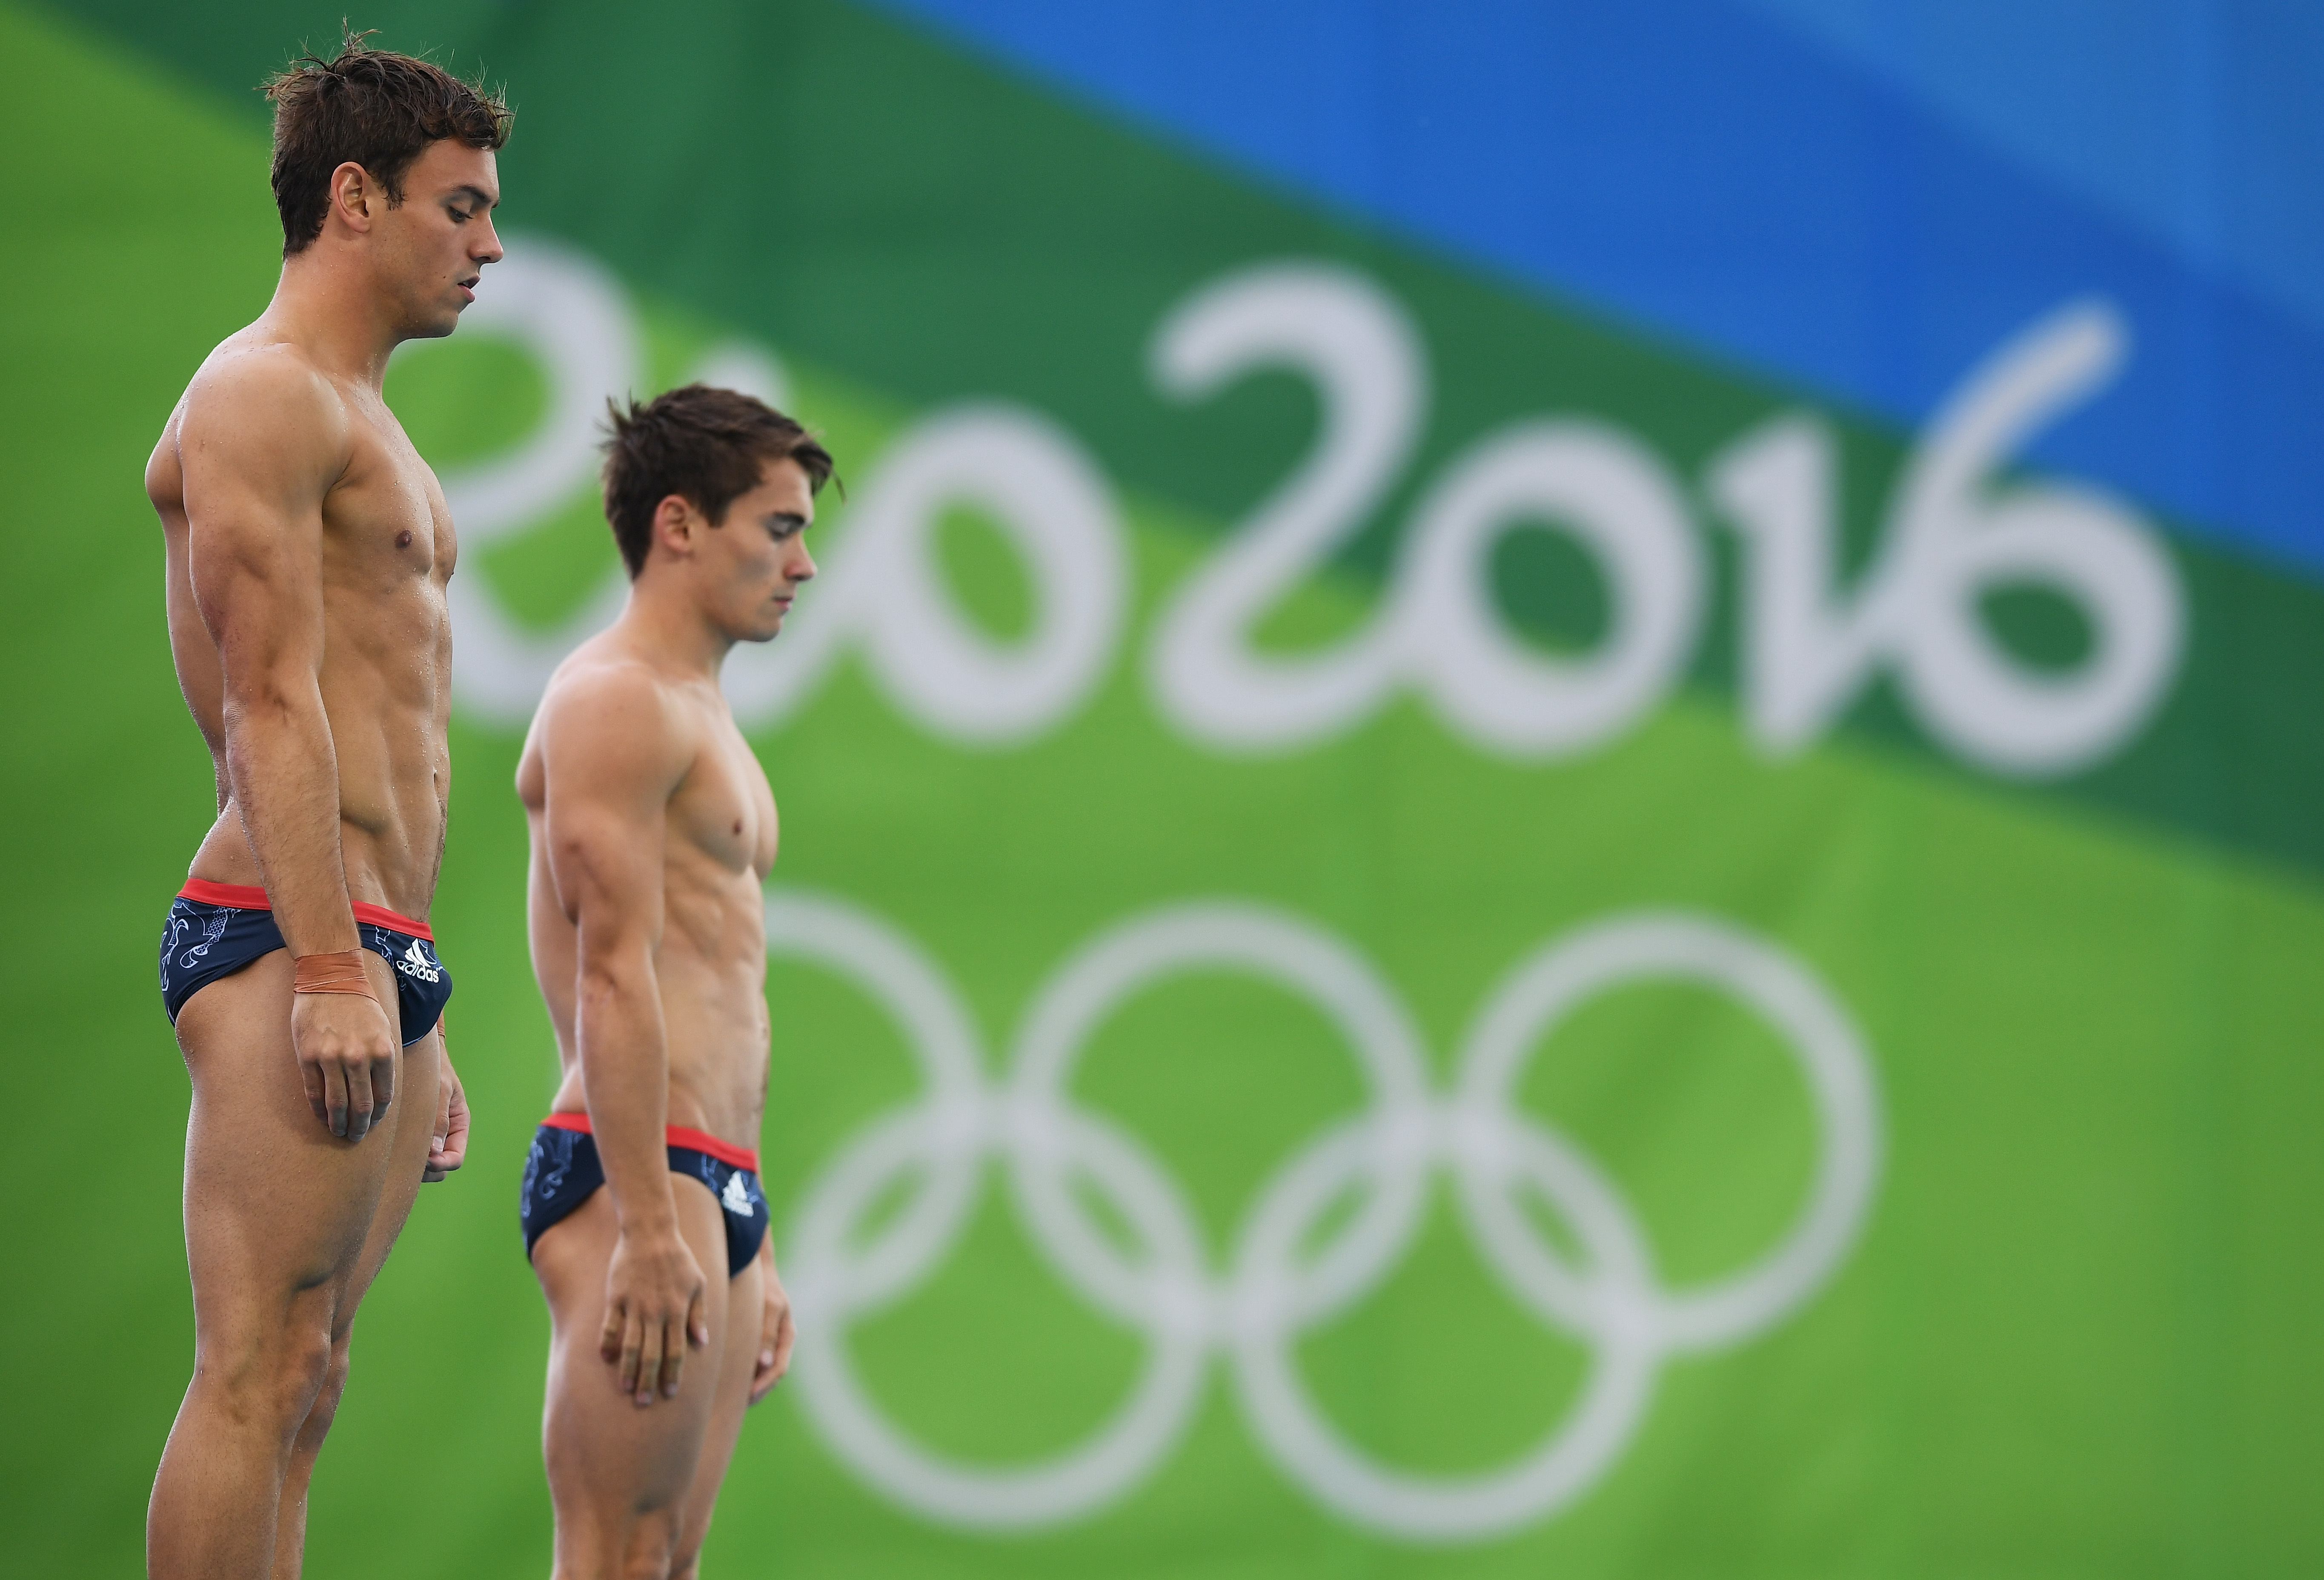 Daley and Goodfellow preparing to dive at the 2016 Rio Olympics